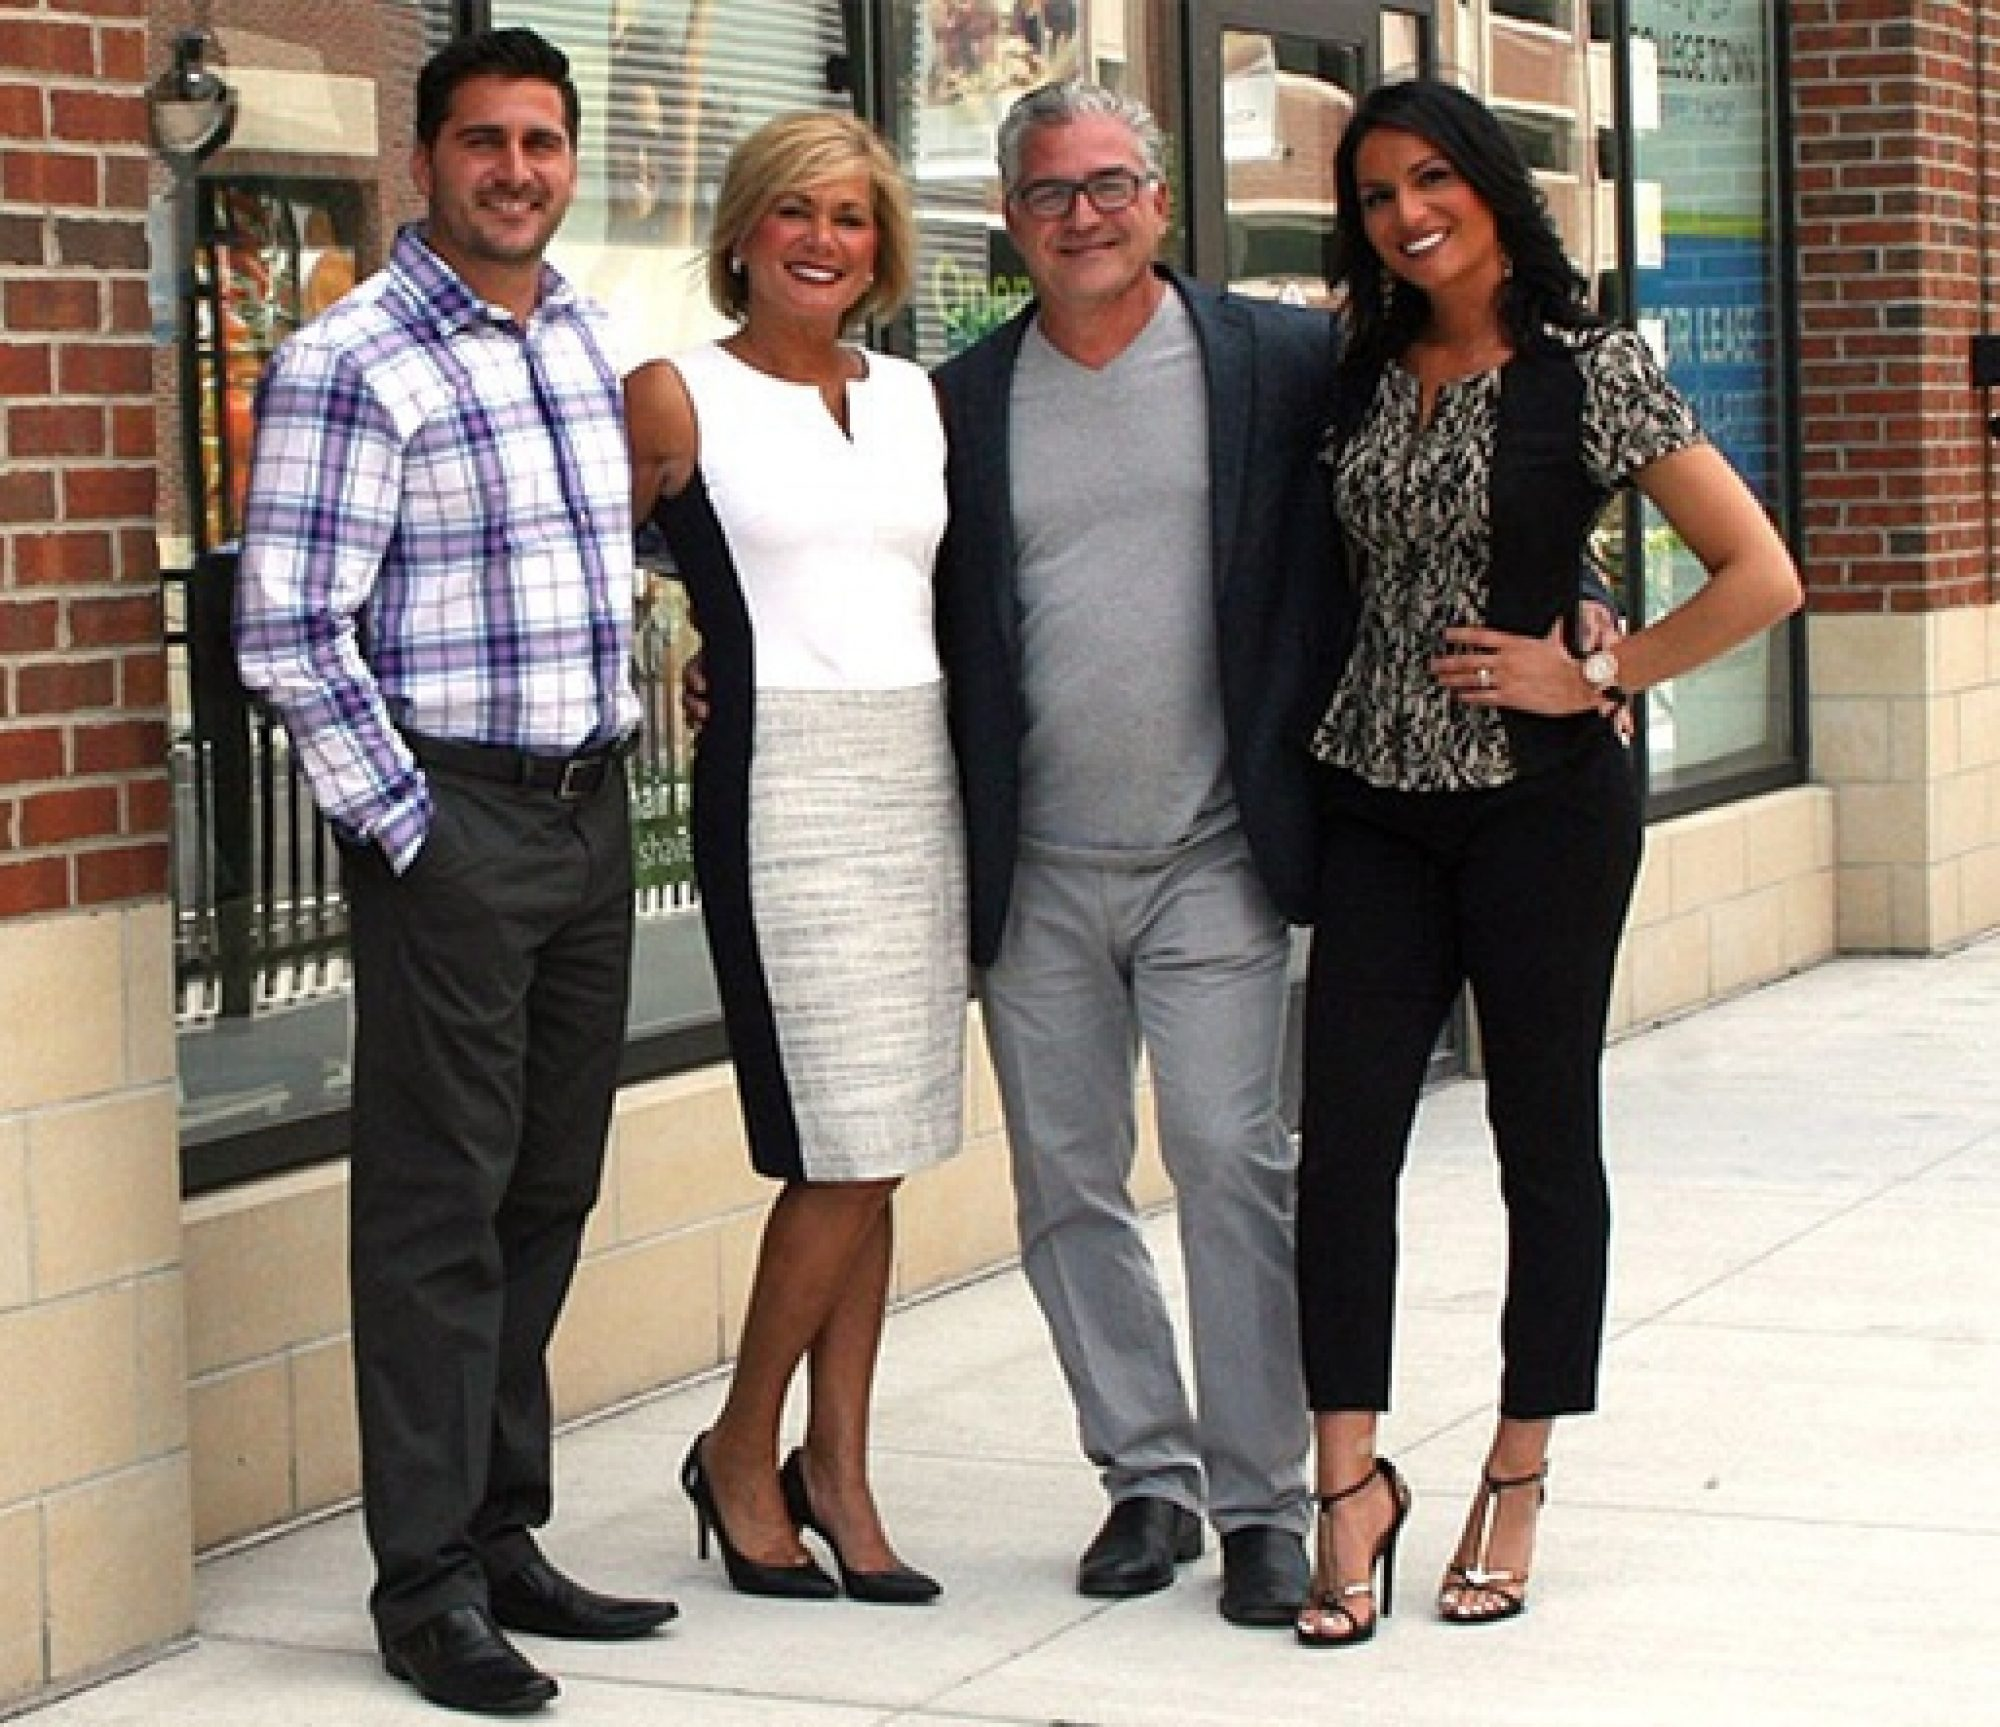 Photo of Spitale family in front of thei salon